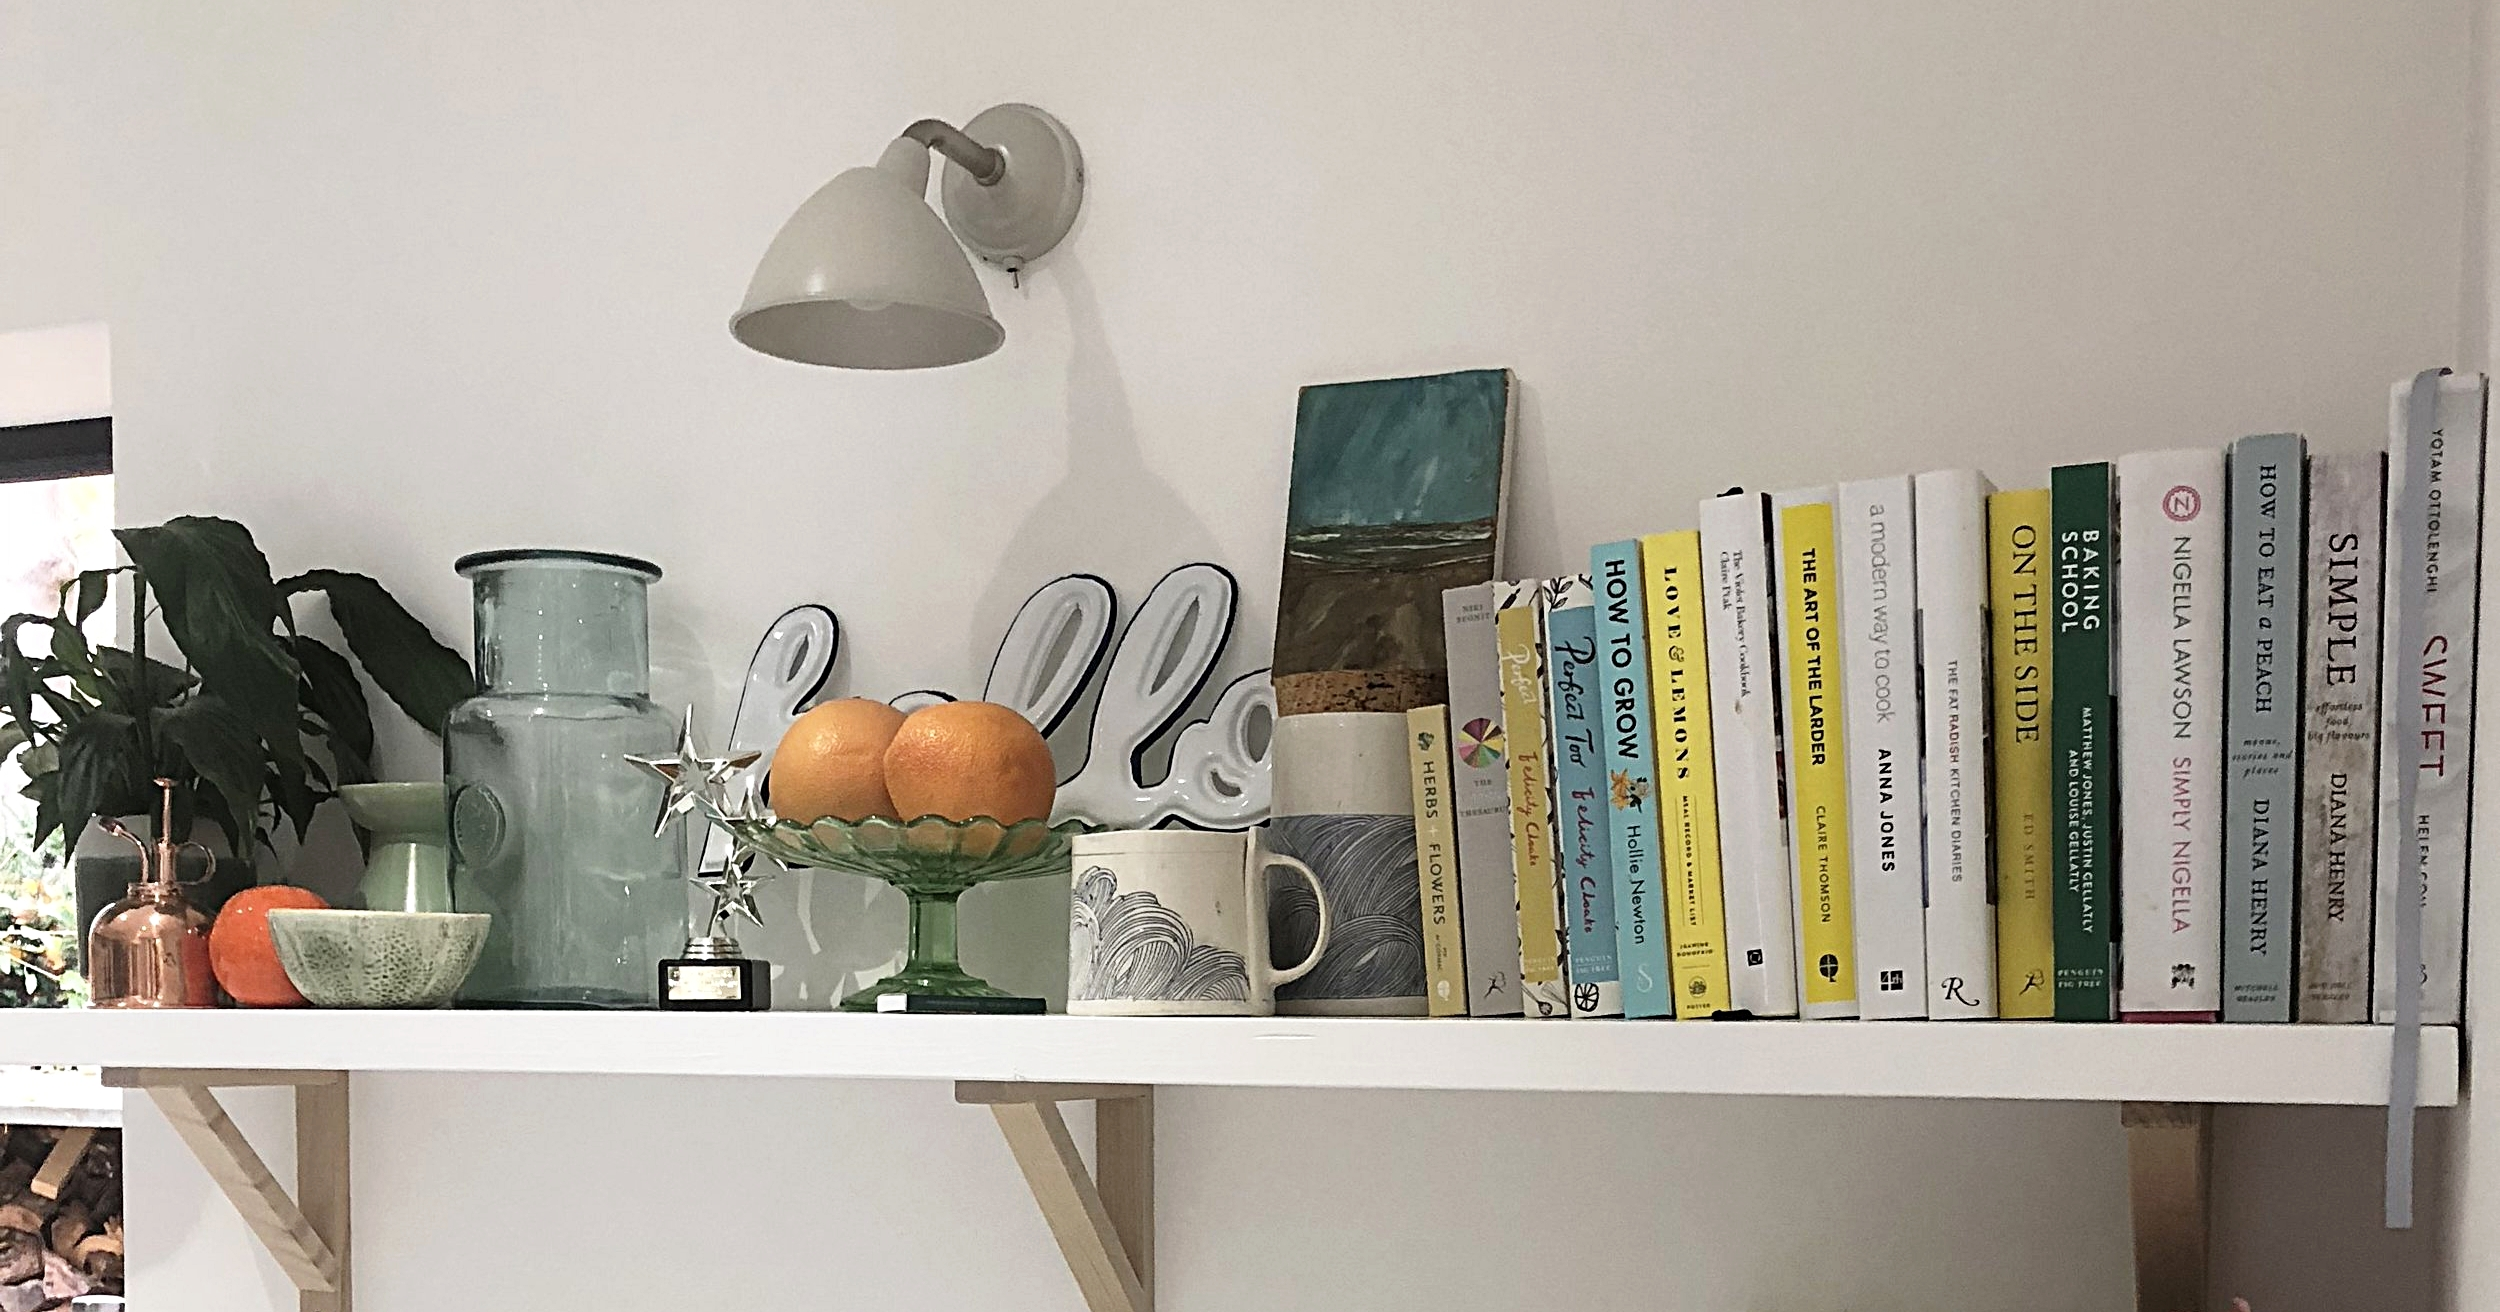 Beautifully curated shelfie in the stunning home of  @gemcwade